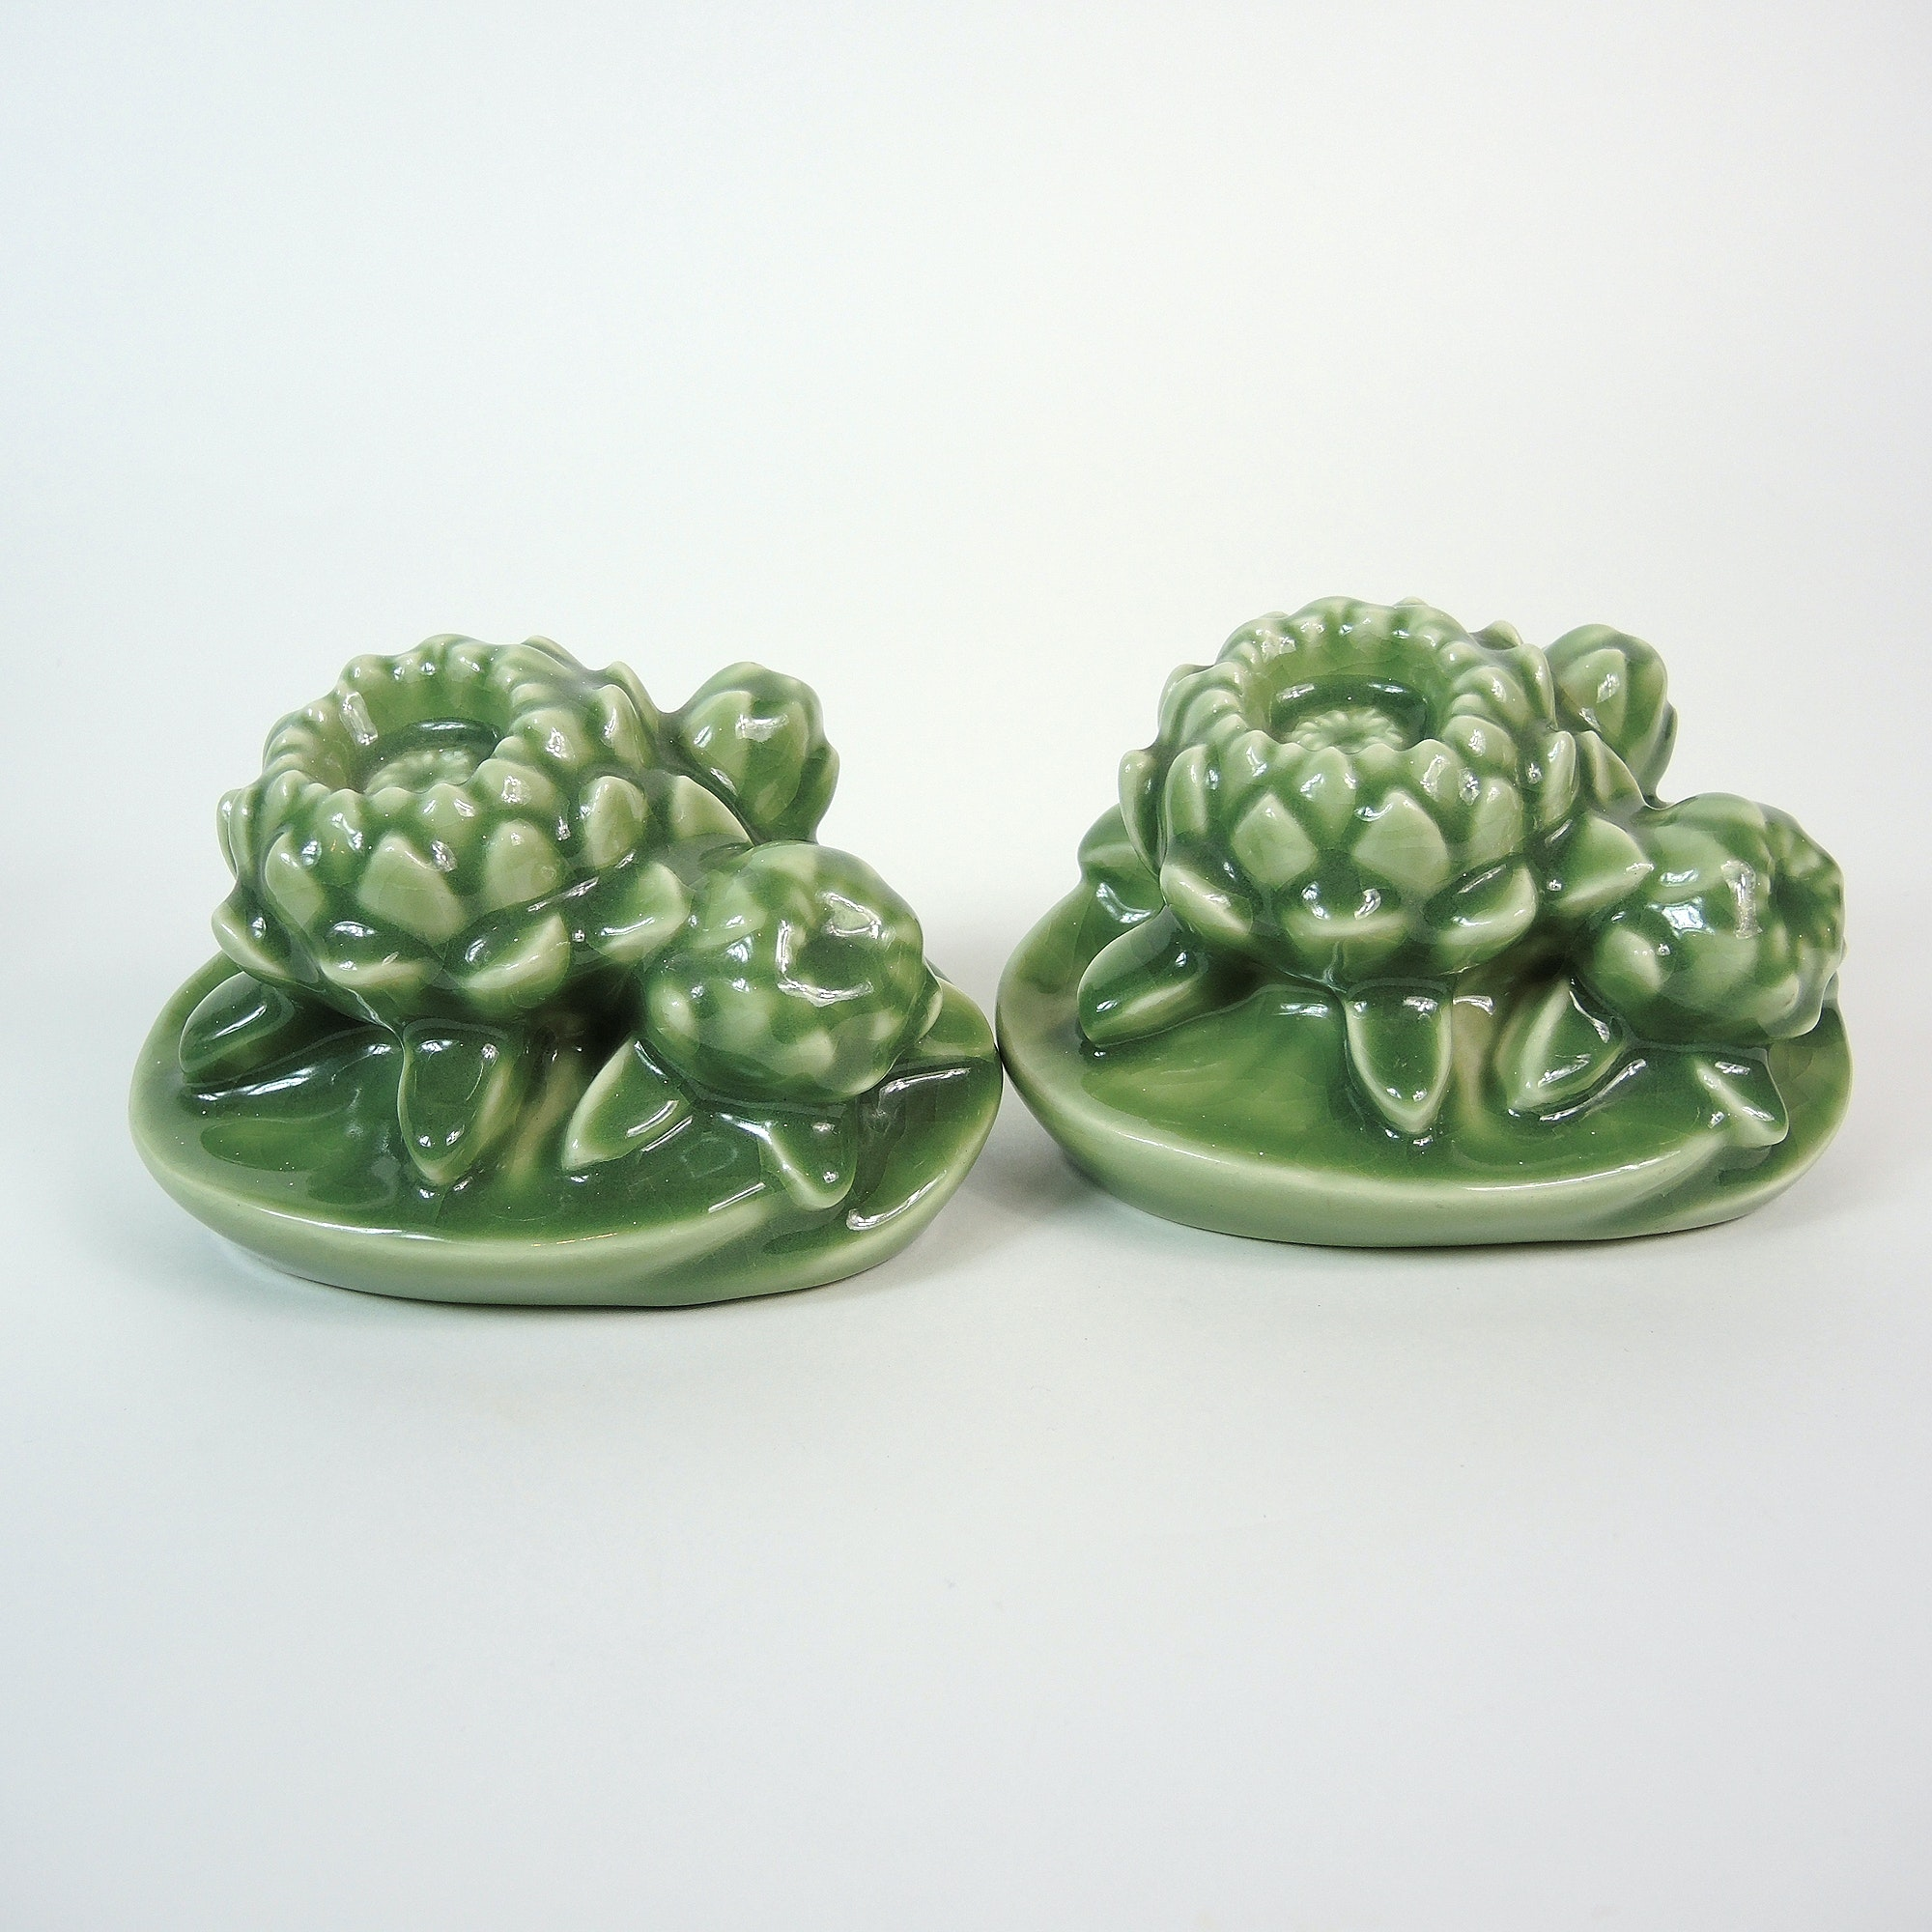 Rookwood Pottery Green Floral Bookends